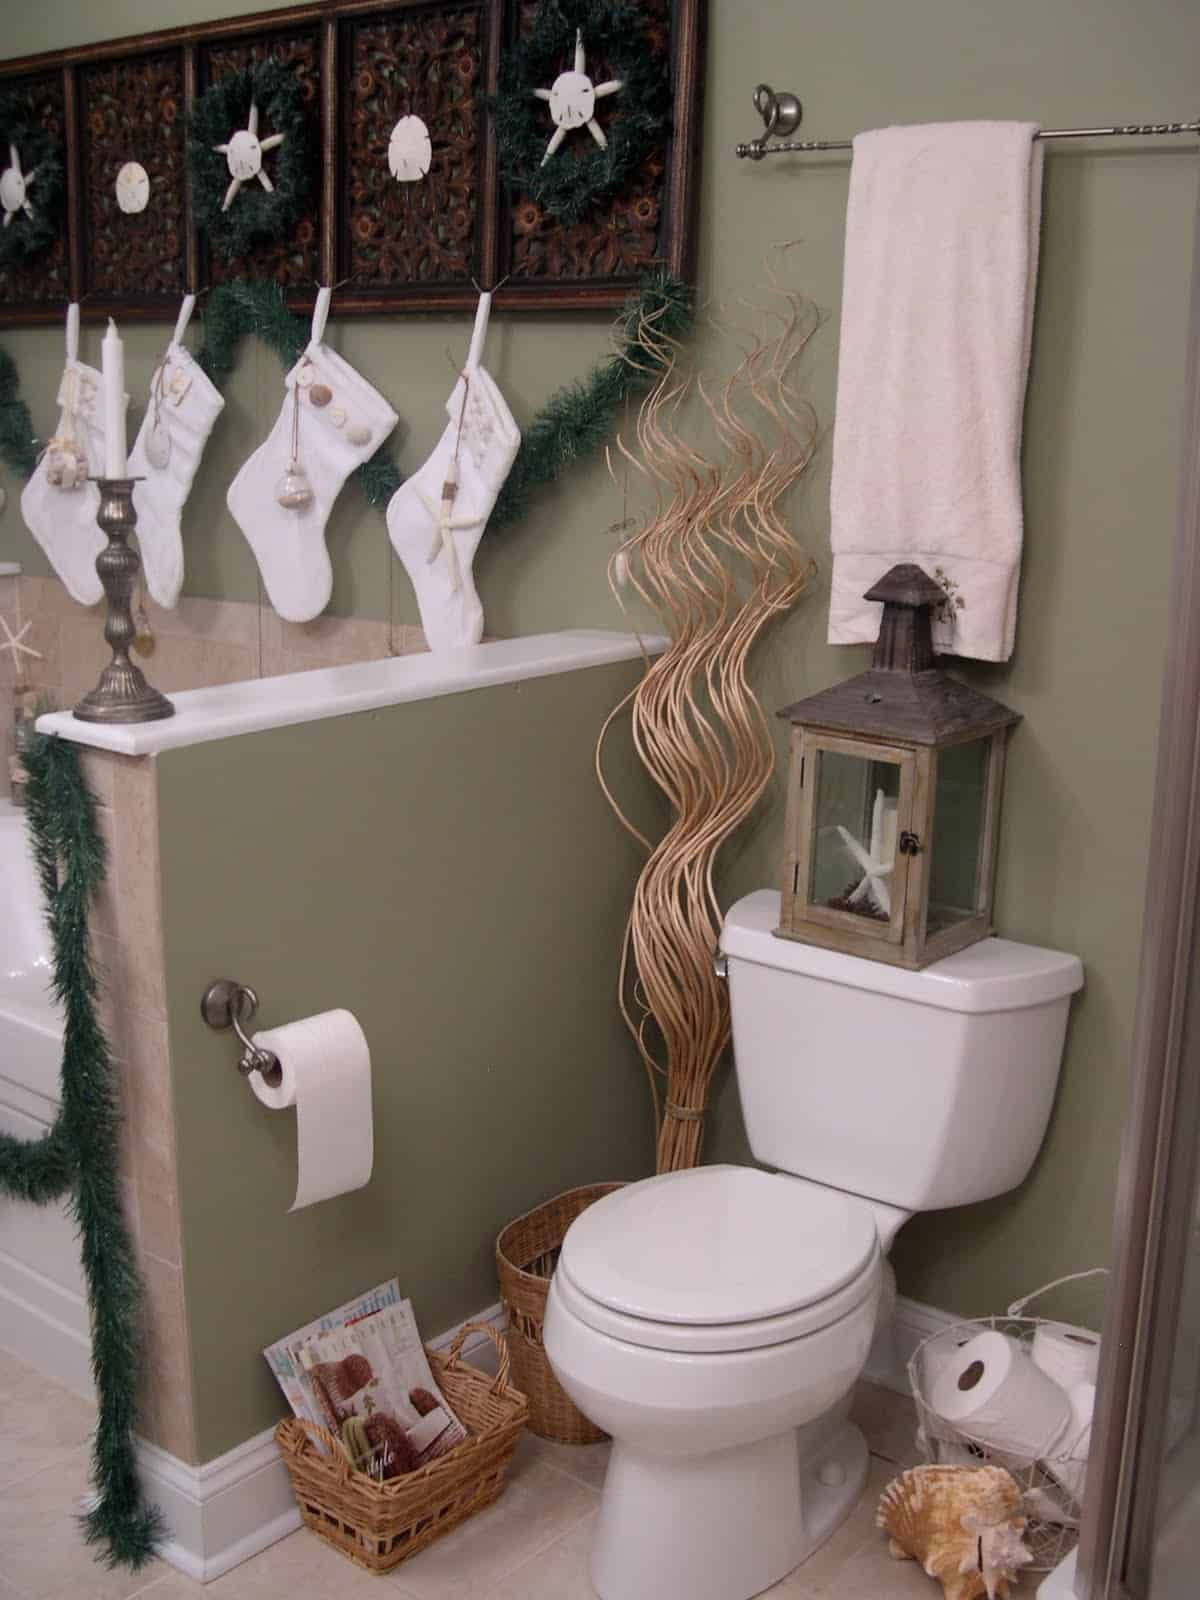 Bathroom Decor Sets for Cheap Elegant 21 Awesomely Unexpected Christmas Bathroom Decorations to